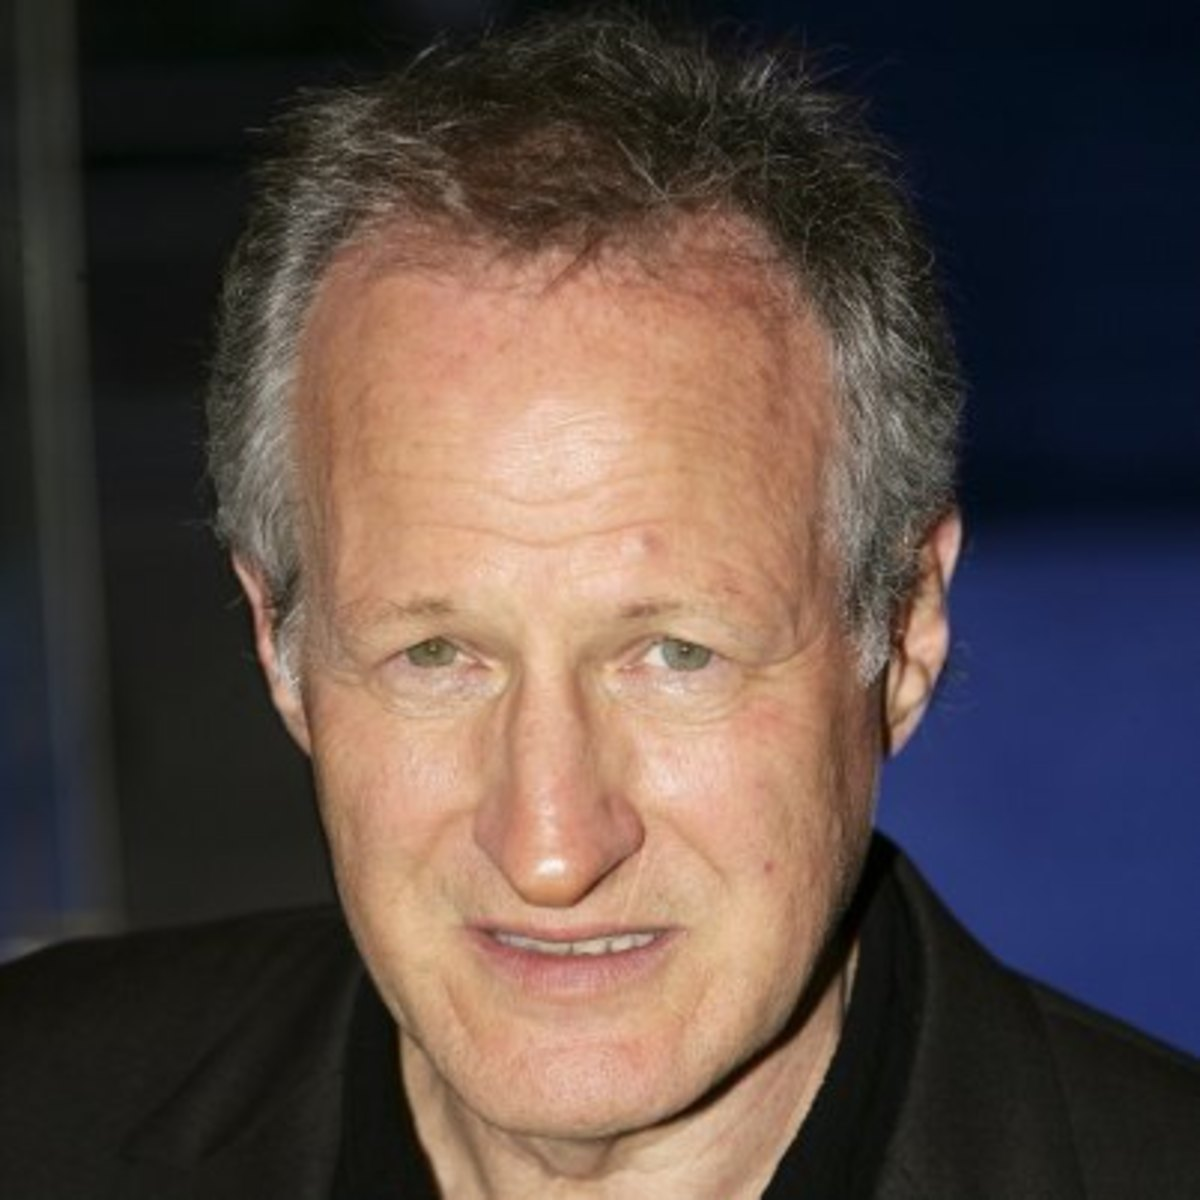 a biography of michael mann Michael mann (born 1942) is a british-born professor of sociology at the university of california, los angeles (ucla) and visiting research professor at queen's.